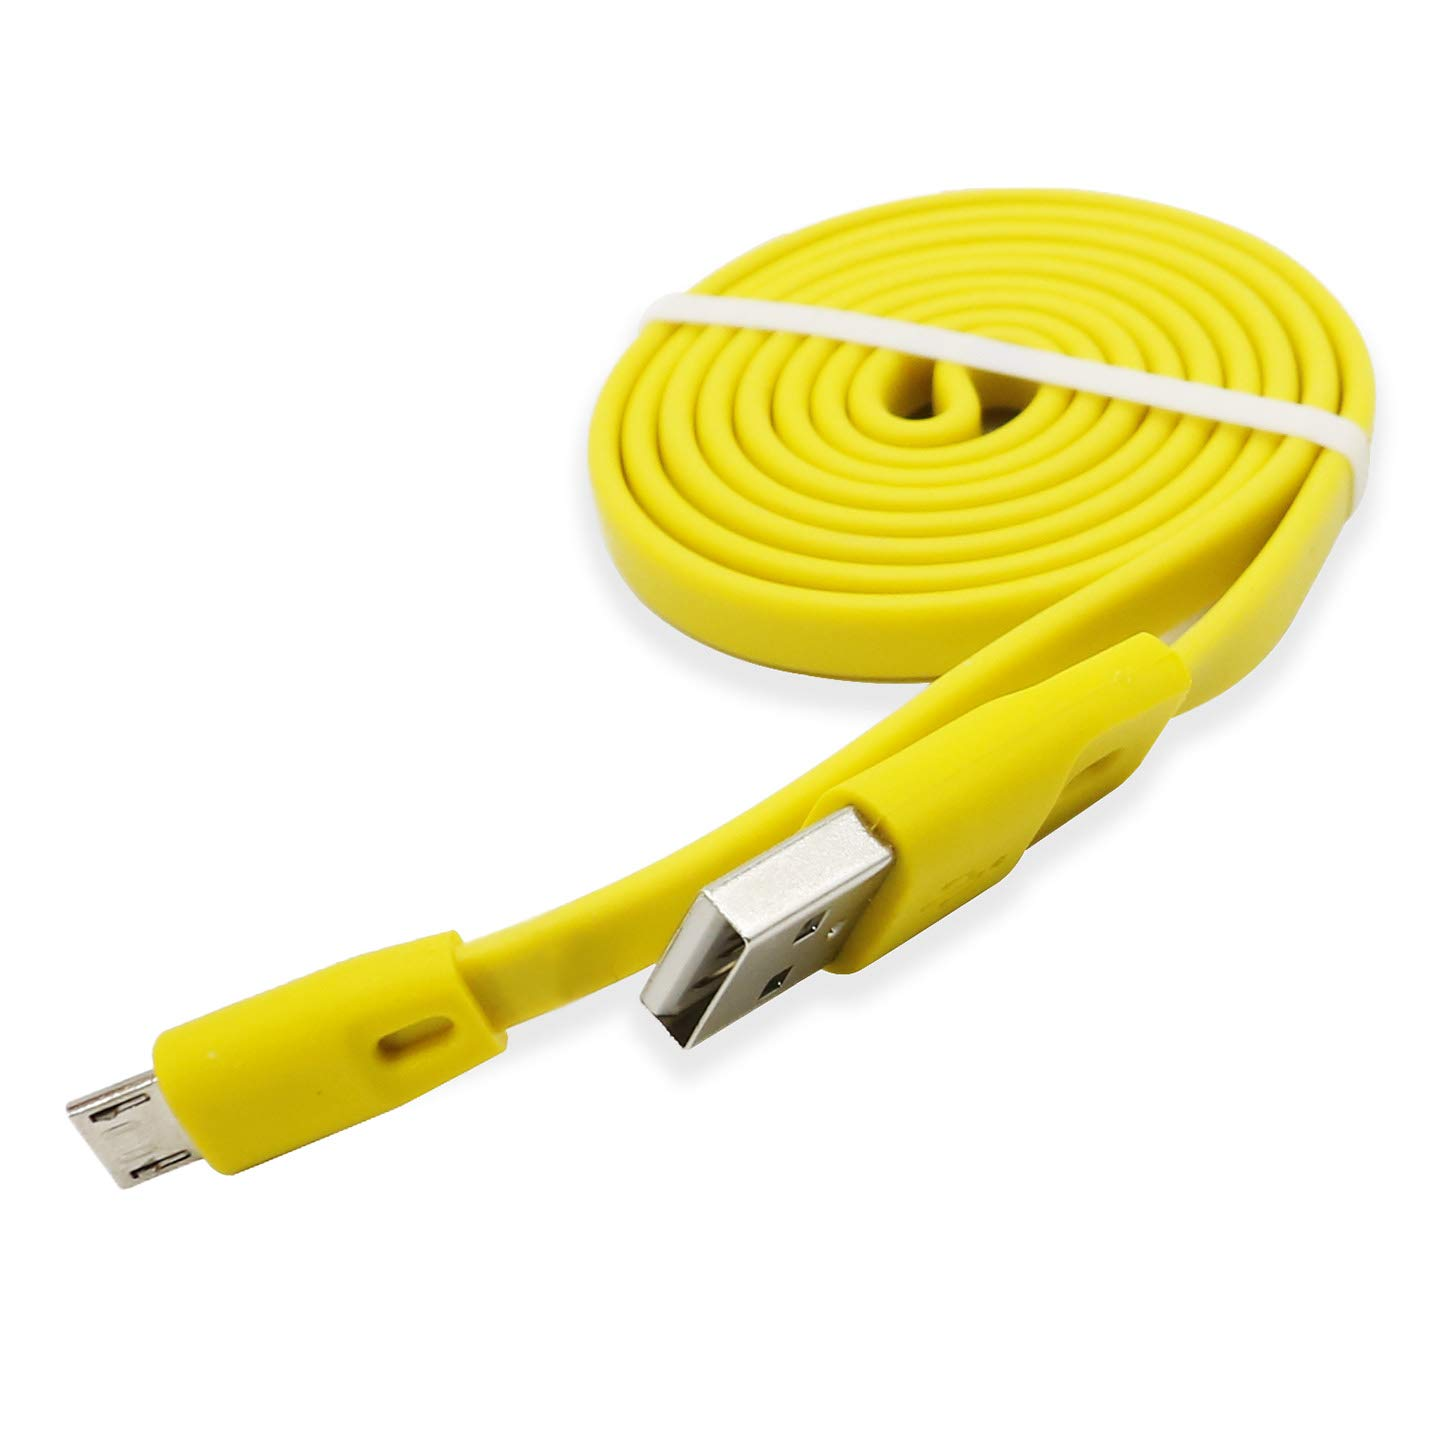 FEIYIU Replacement security Charging Charge Cable Super intense SALE with fo Compatible Cord